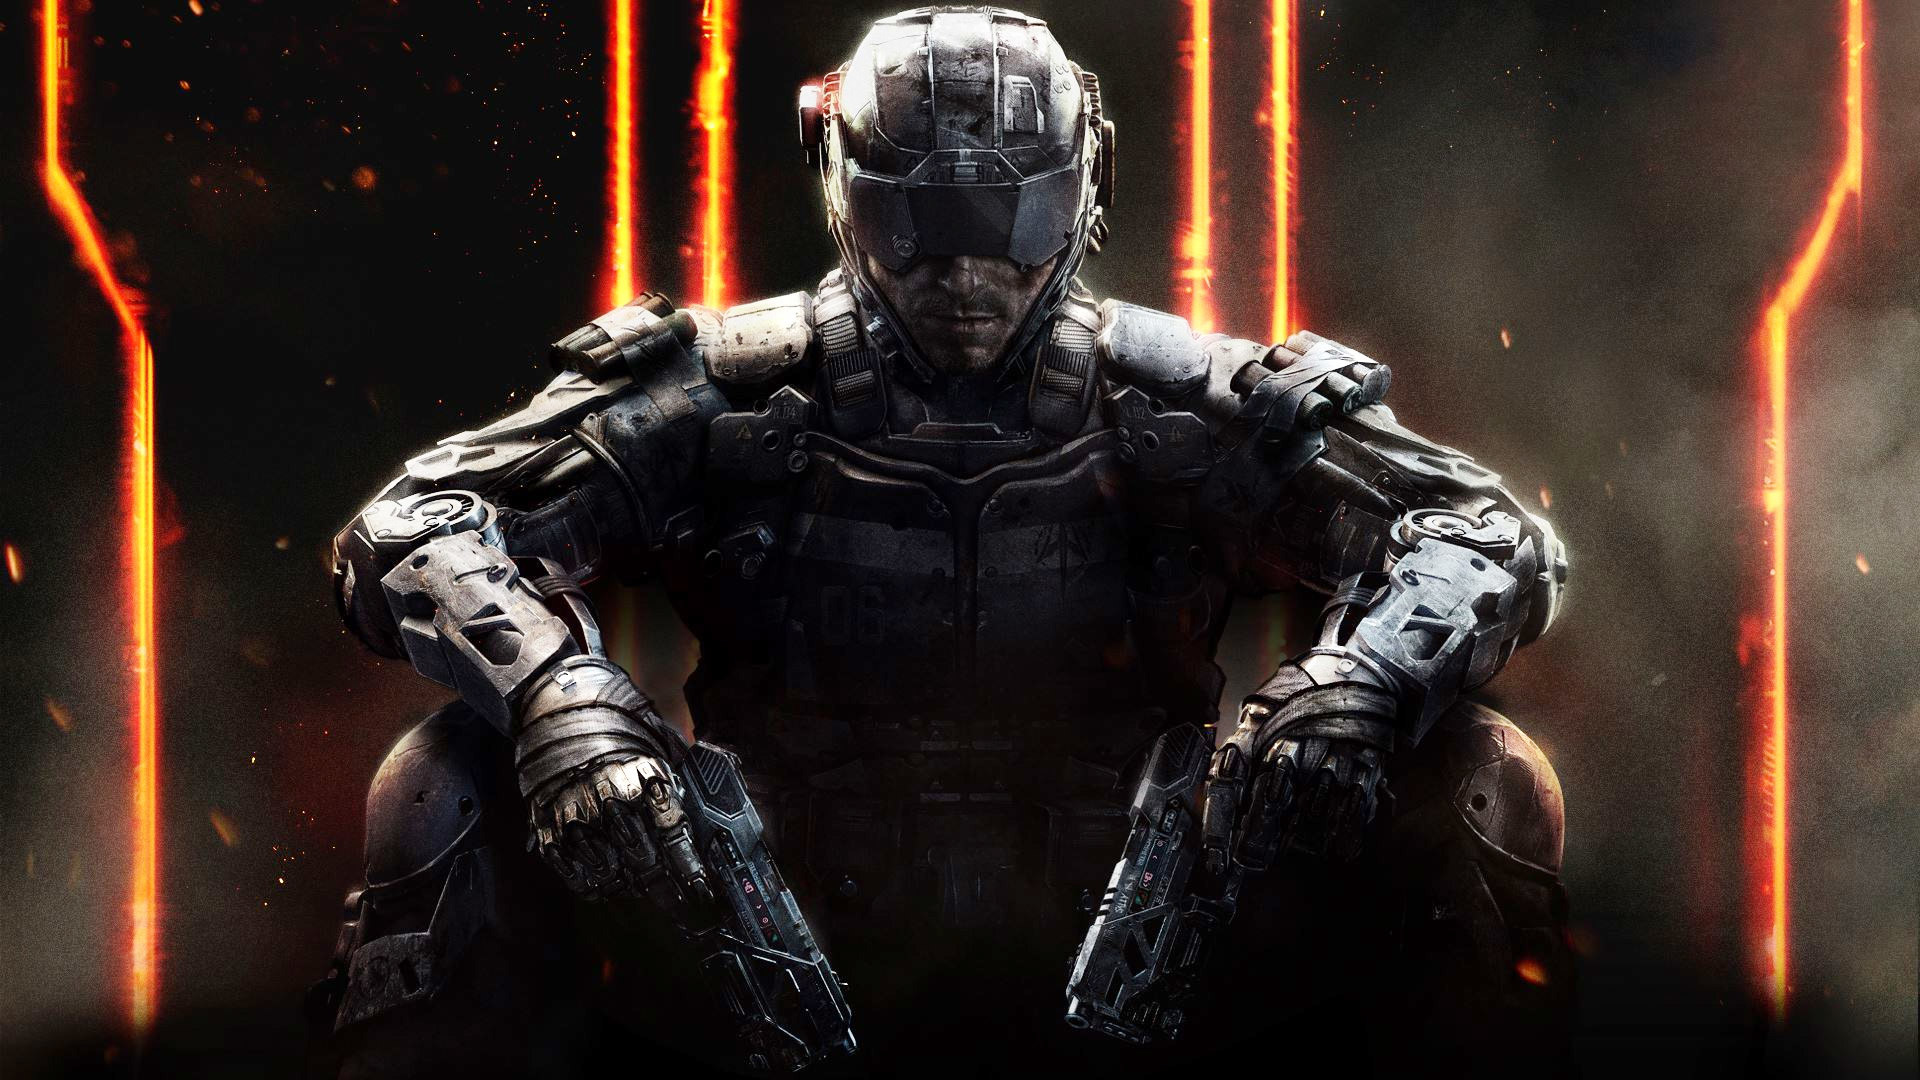 1920x1080 ... Call of Duty: Black Ops 3 Wallpapers ...